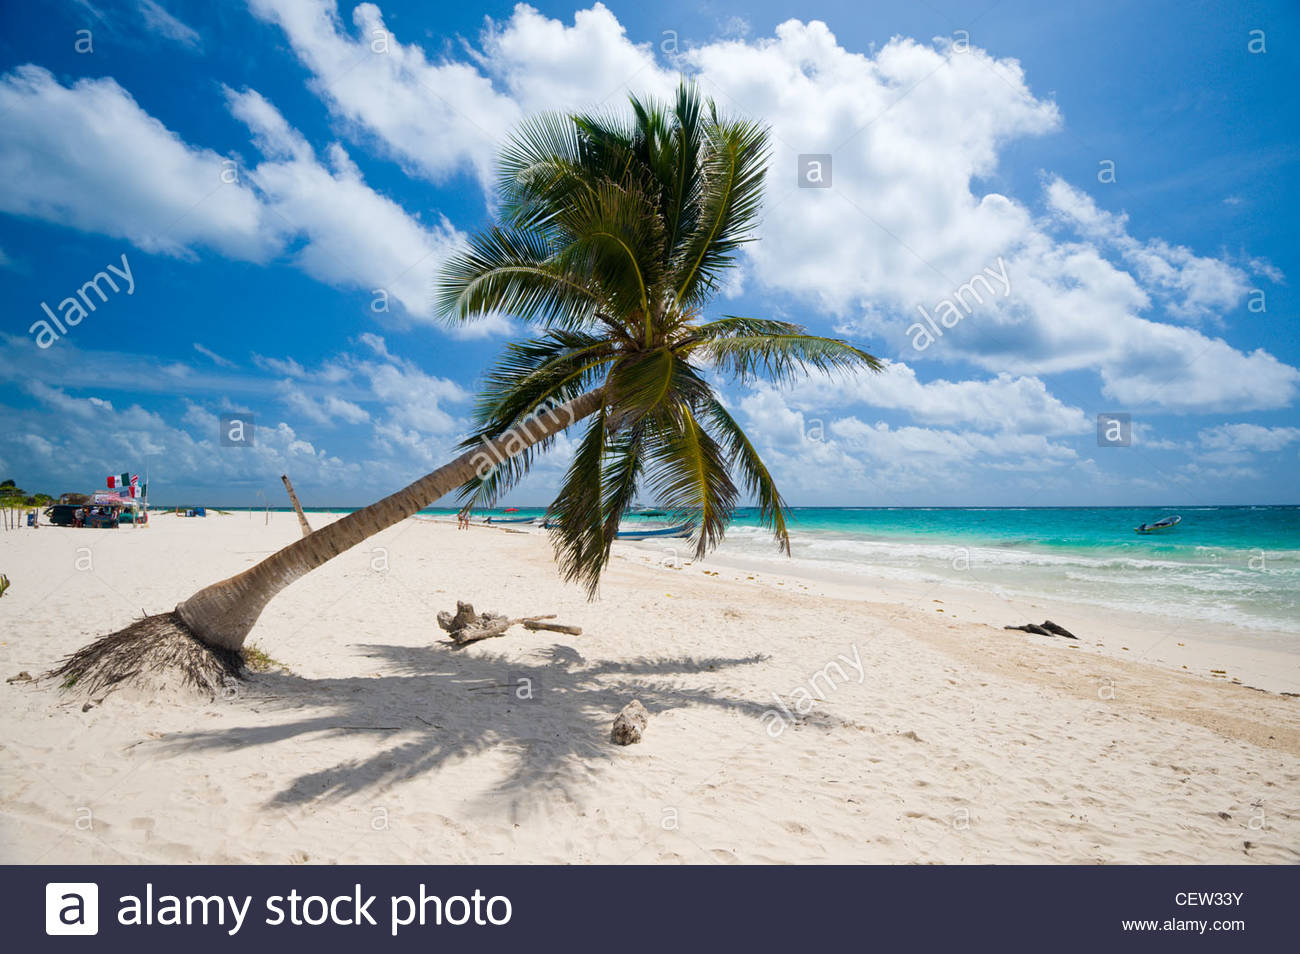 mexican peninsula stock photos & mexican peninsula stock images - alamy